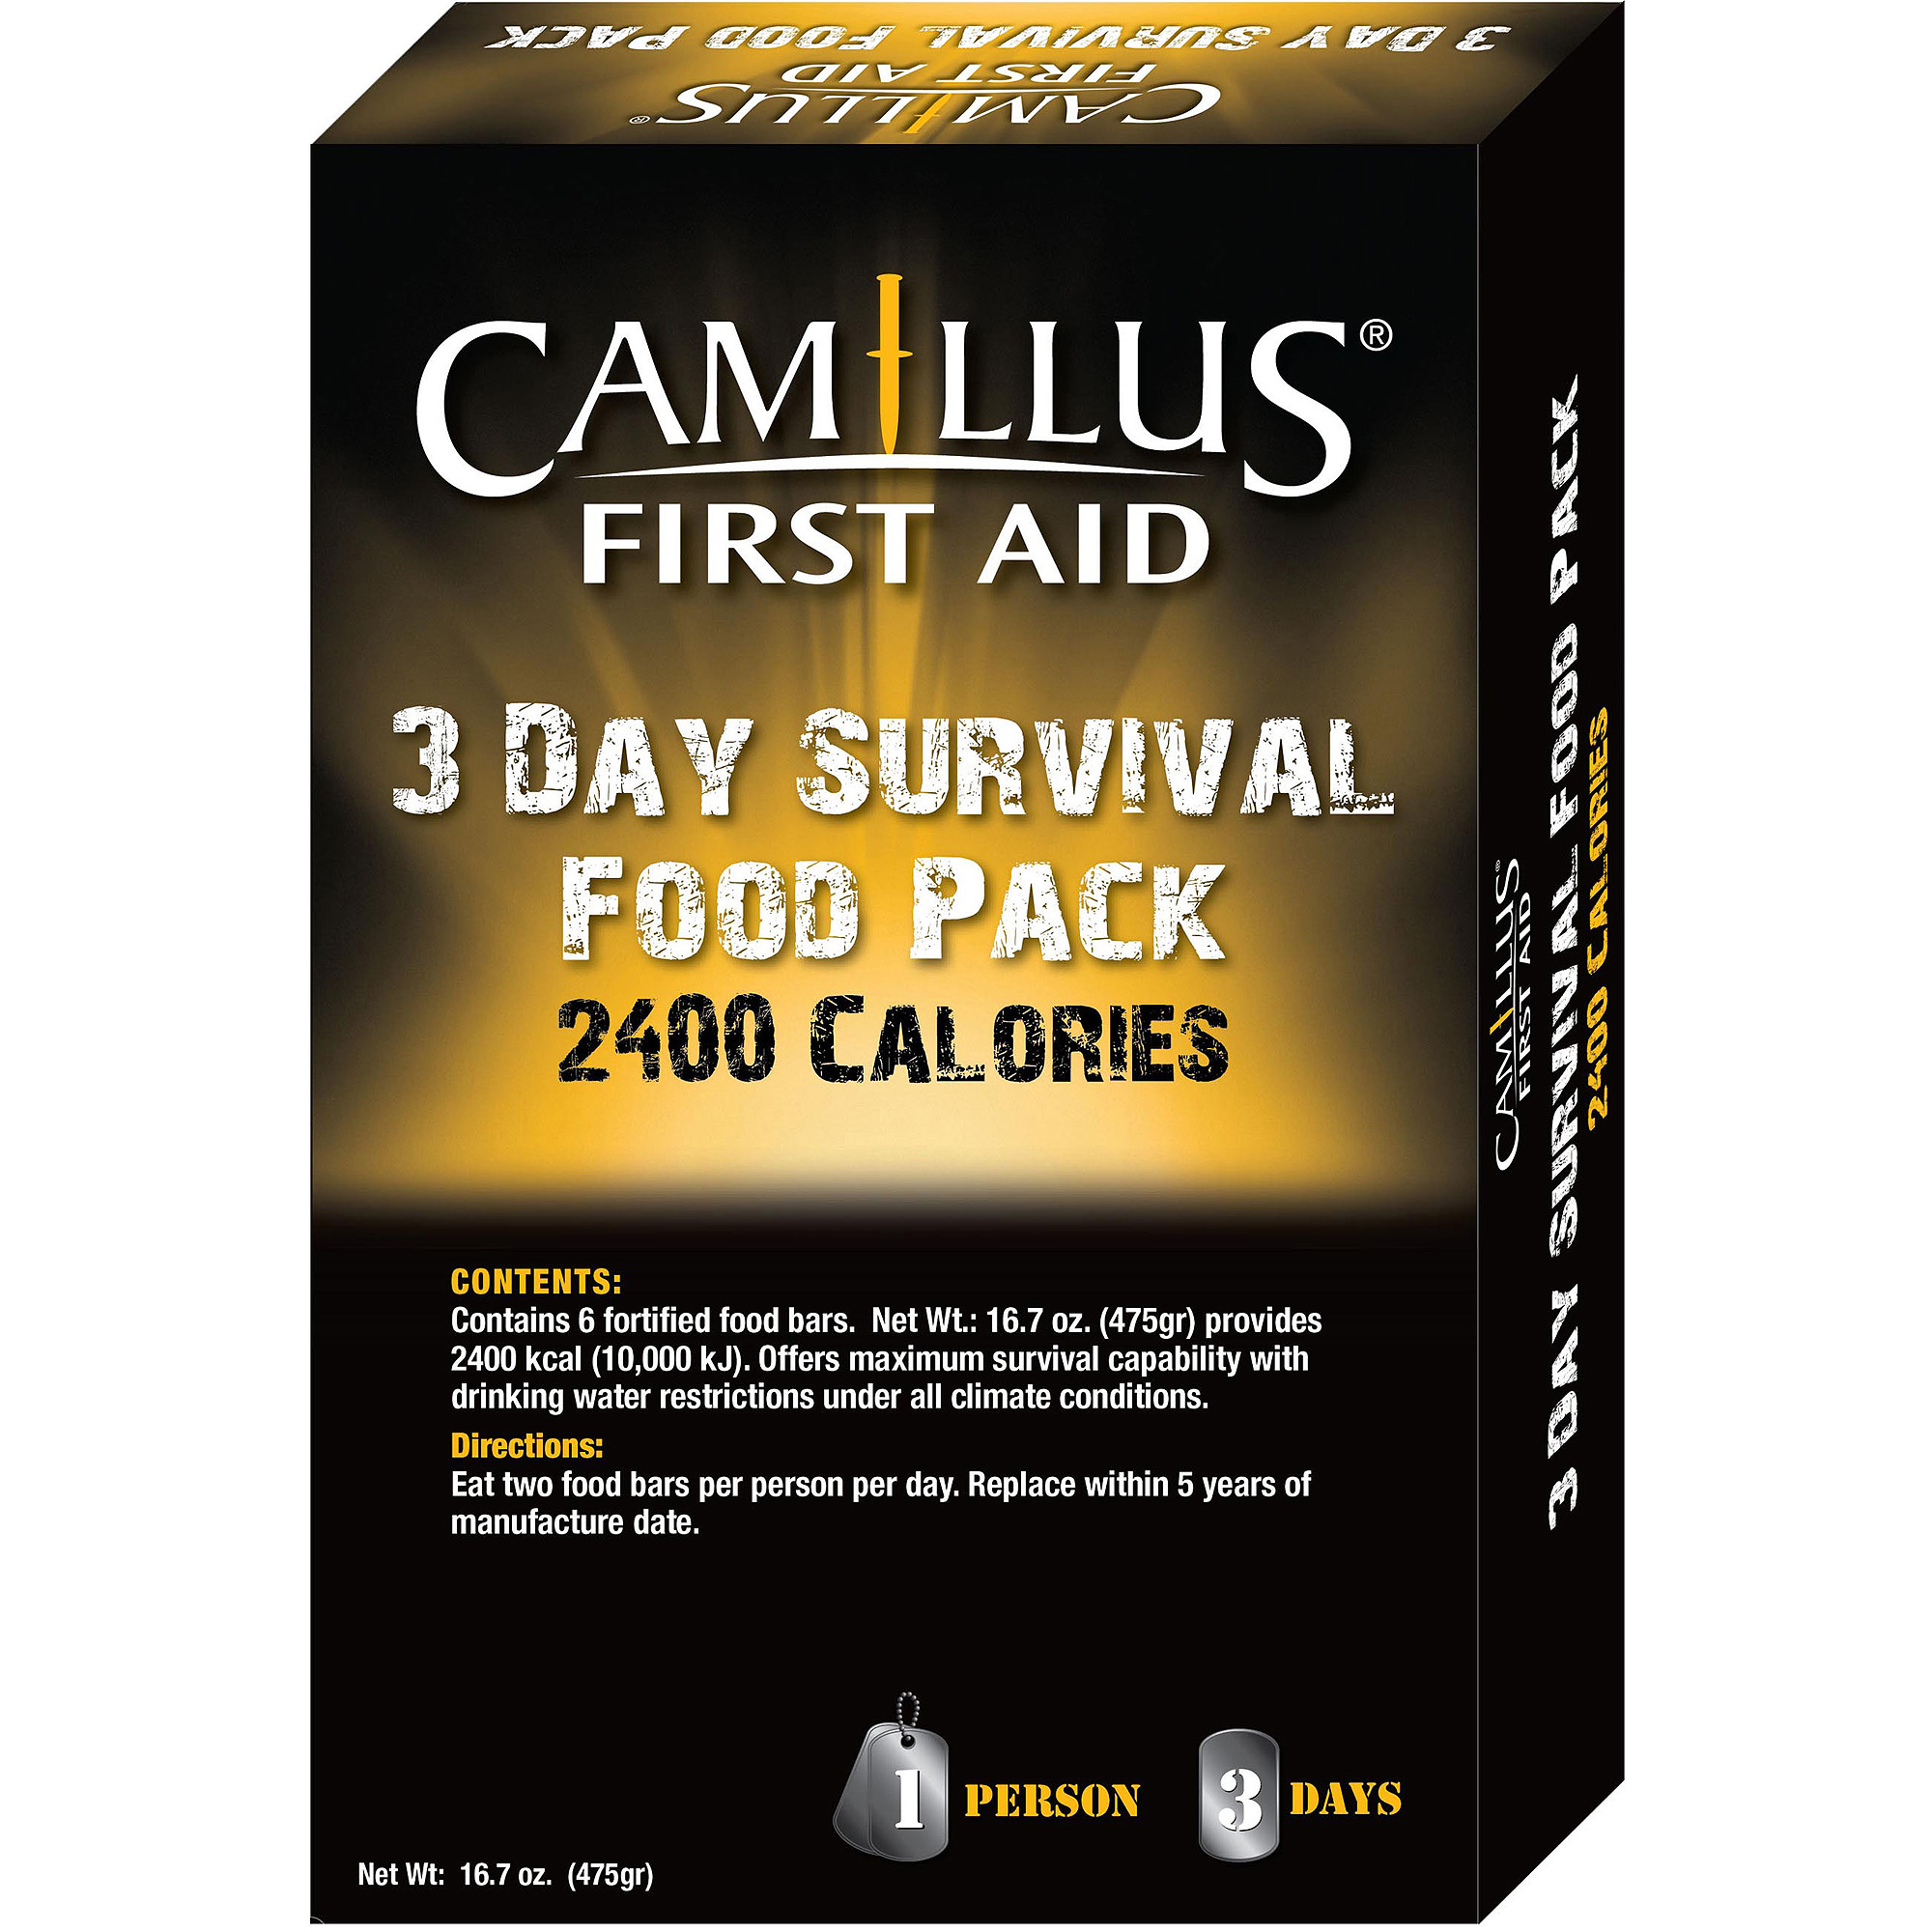 Camillus 3-Day Emergency Food Supply